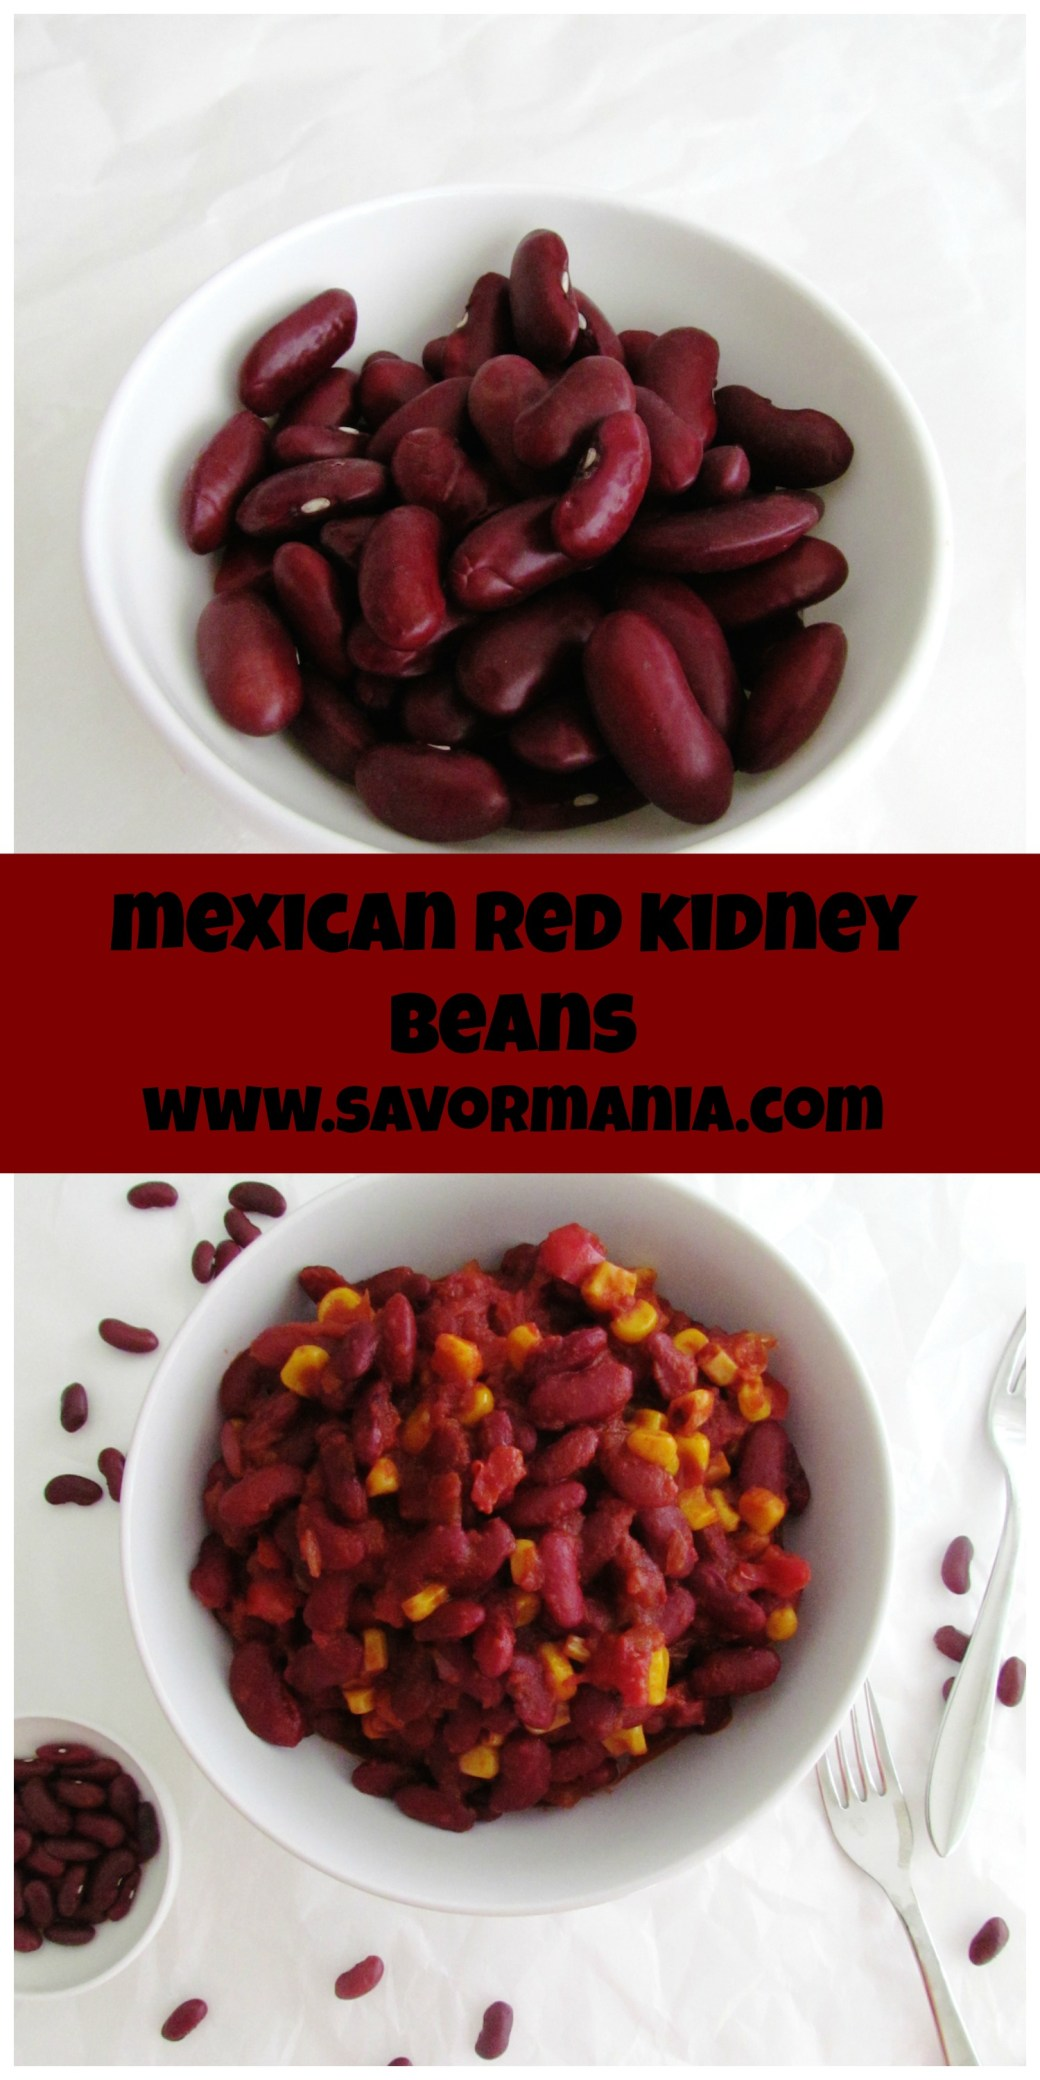 Mexican Red Kidney Beans | www.savormania.com